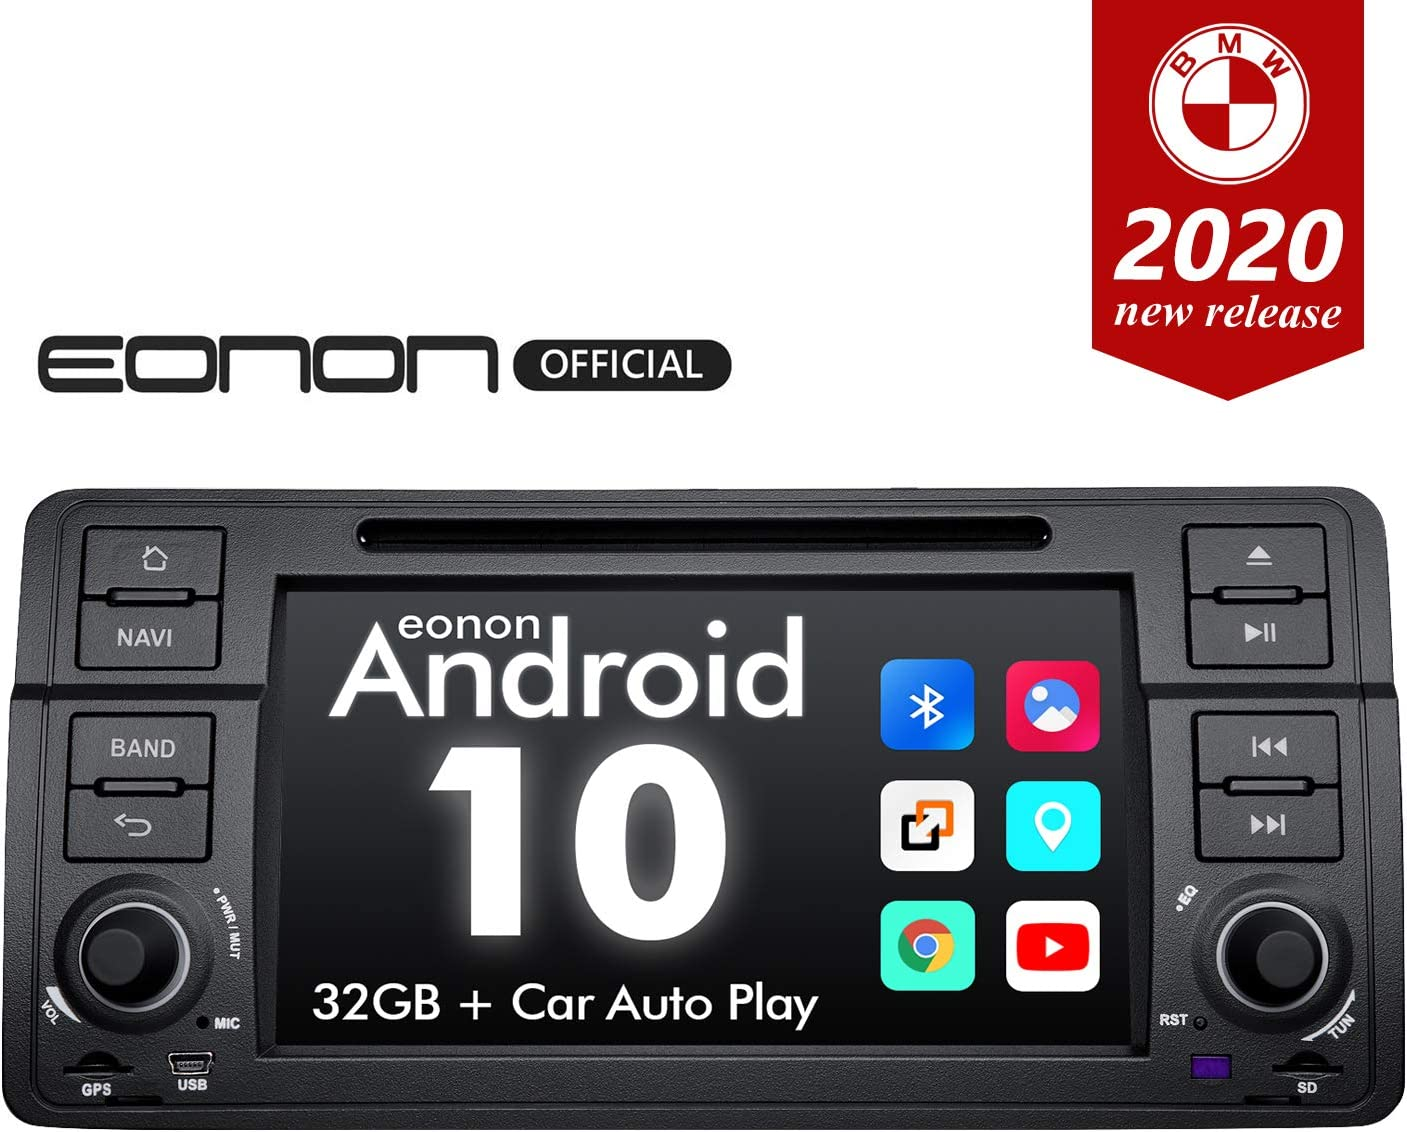 2020 Newest Android Car Stereo Android 10 Double Din Car Stereo, Eonon Car Radio Applicable to BMW 3 Series Android Head Unit Support Carplay/Android Auto/WiFi/Fast Boot/Backup Camera-7 Inch-GA9450